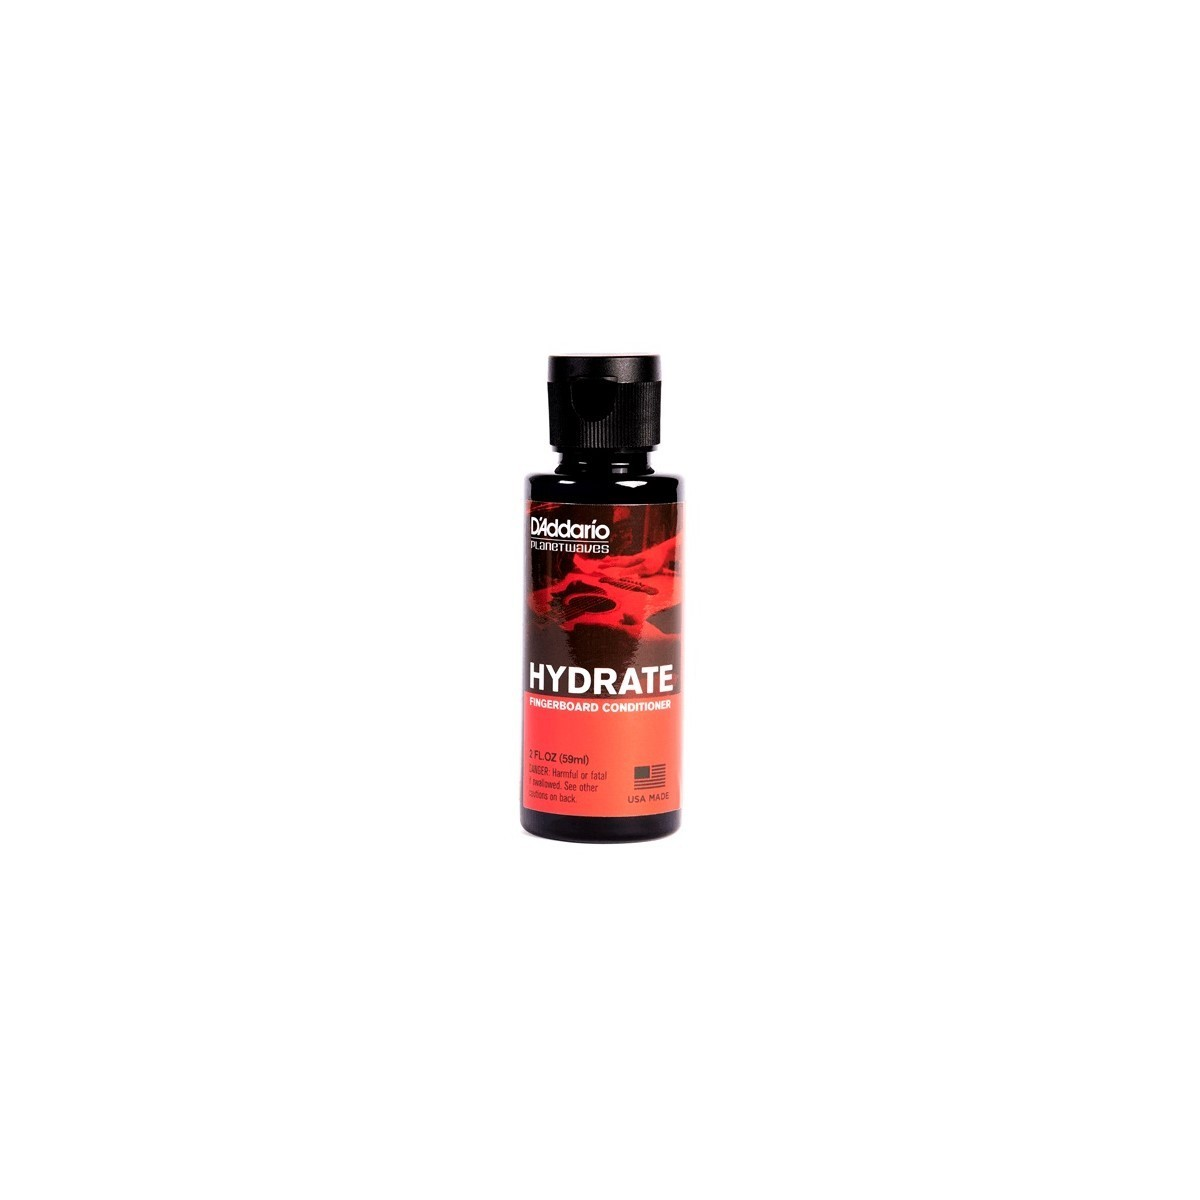 Tonepros Abr-i Replacement Chrome